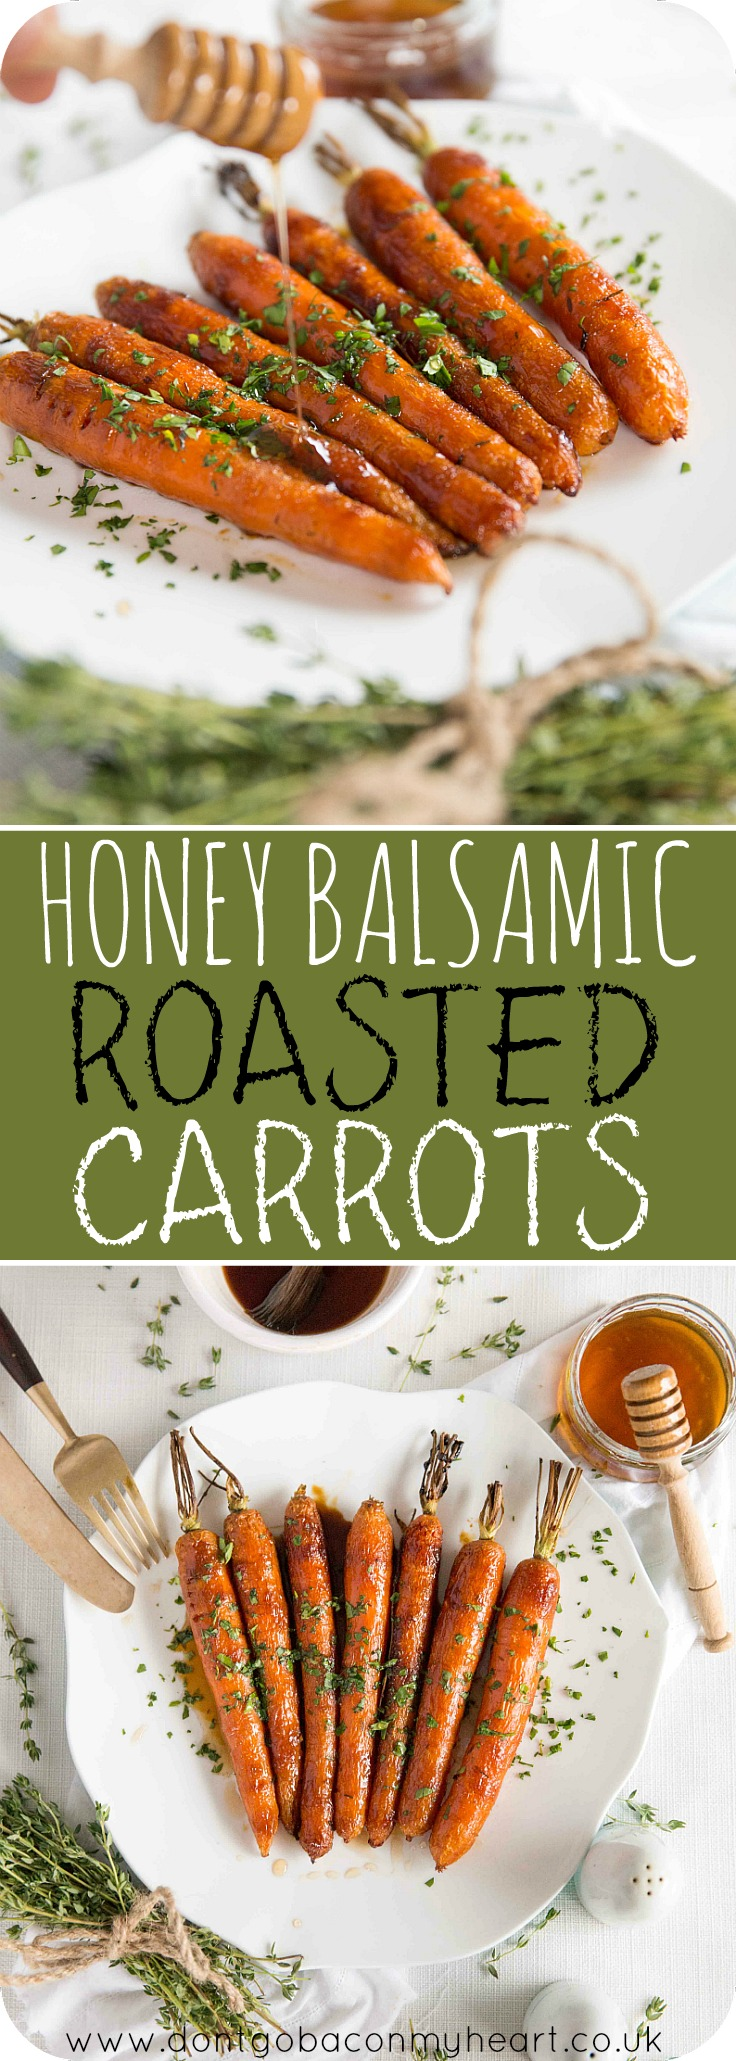 These Honey Balsamic Roasted Carrots are beautifully caramelized in a sweet and sticky glaze. The perfect side dish for your Sunday roast #roastdinner #carrots #honey | www.dontgobaconmyheart.co.uk